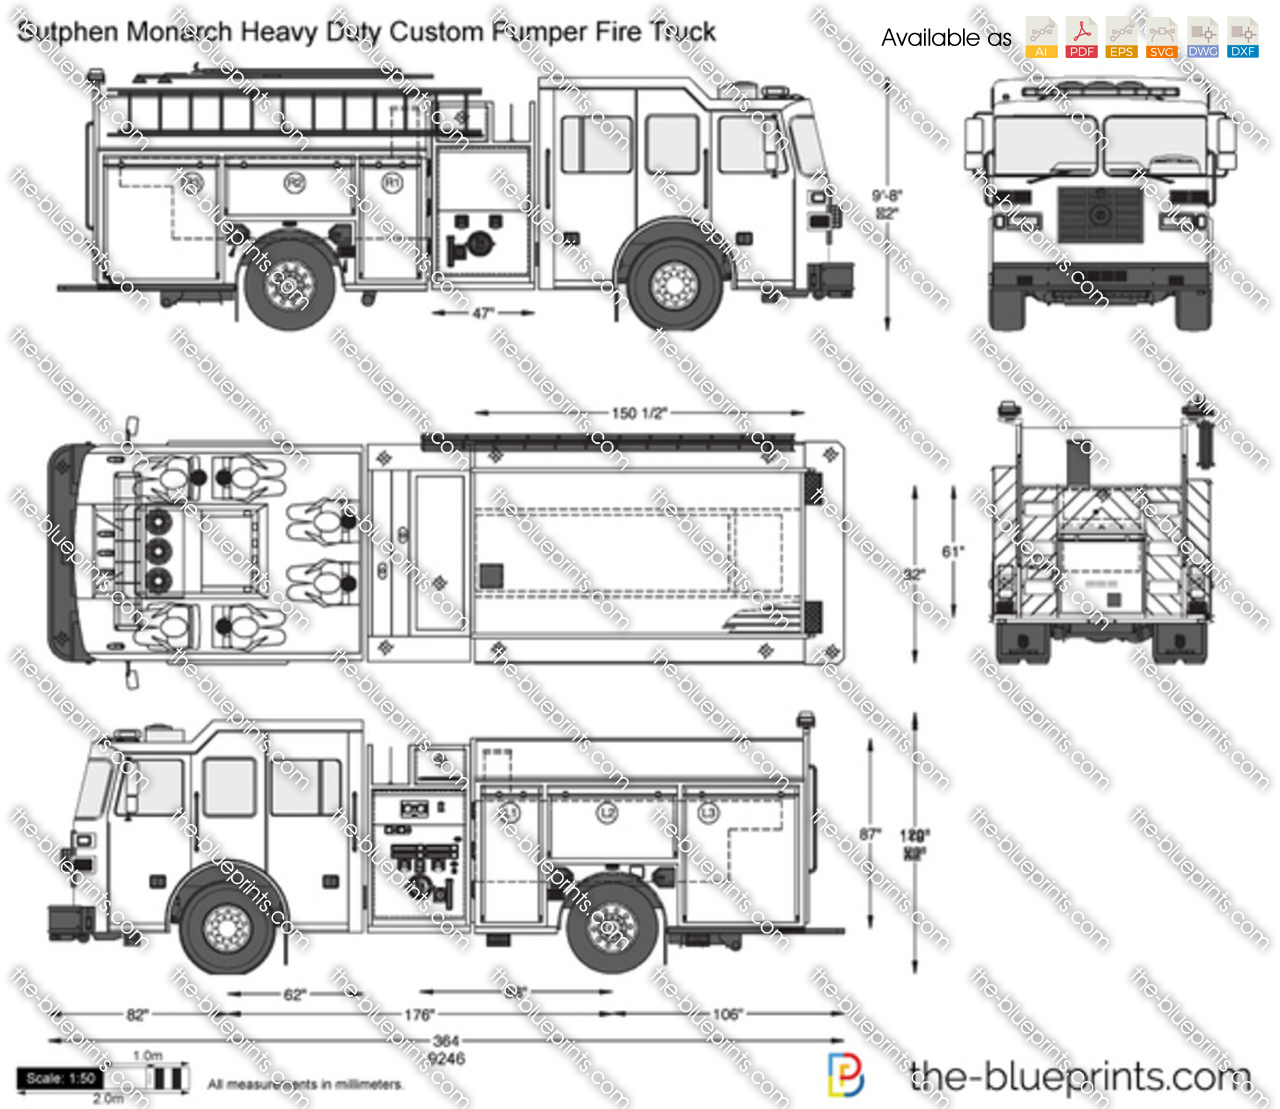 fire engine size  fire  free engine image for user manual